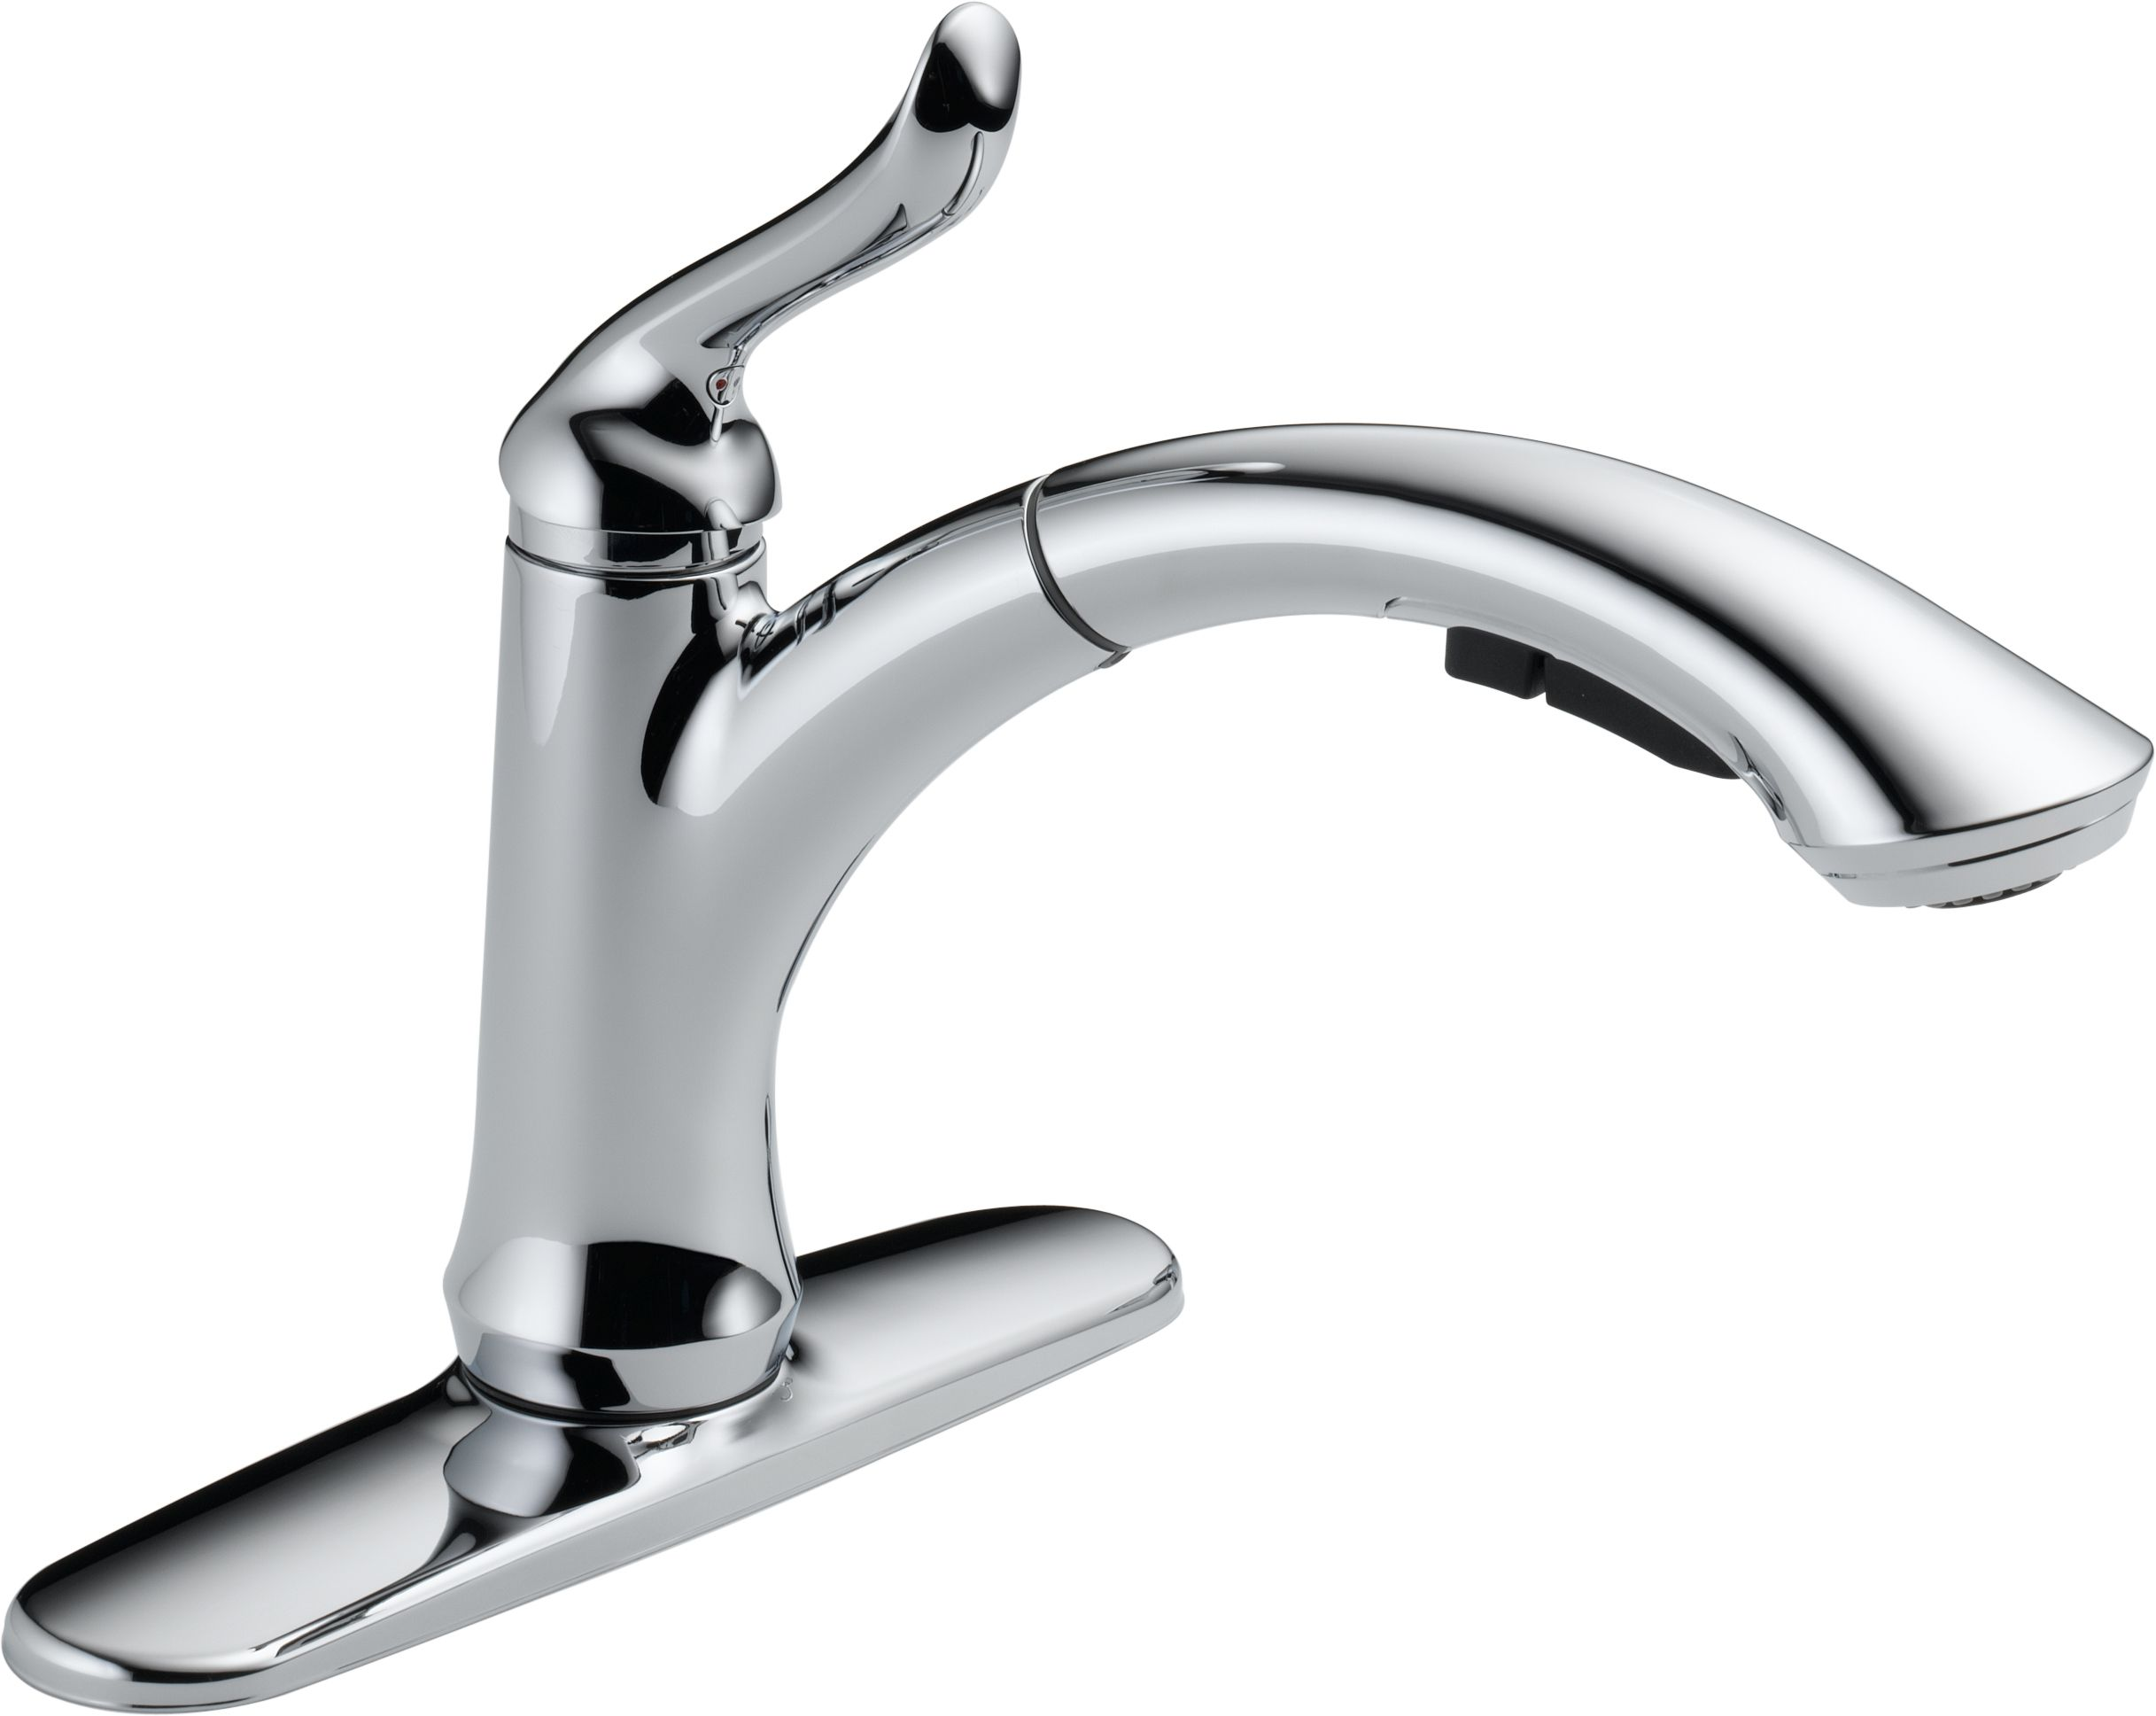 delta 4353 ar dst arctic stainless linden pull out kitchen faucet delta 4353 ar dst arctic stainless linden pull out kitchen faucet with temporary flow increase optional base plate includes lifetime warranty faucet